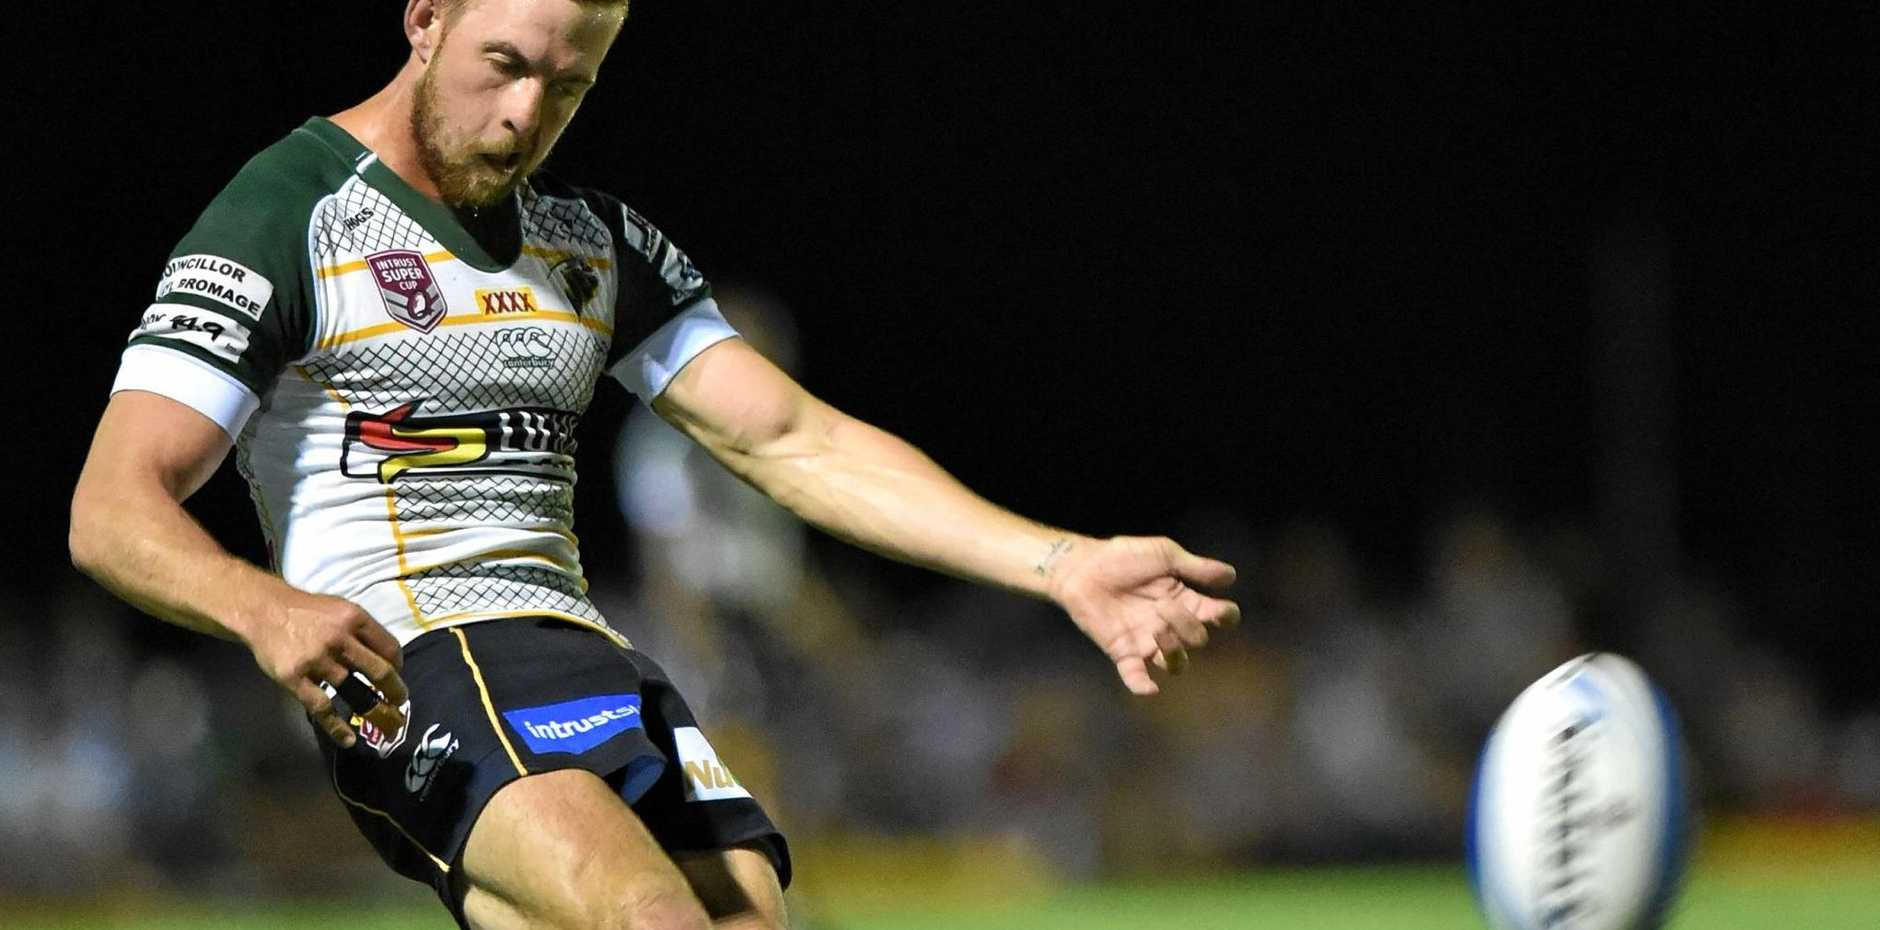 PROMISING: Hayden Lipp bangs the ball downfield for the Ipswich Jets. He has linked with the Sunshine Coast Falcons and is in the running for a ball-playing role.